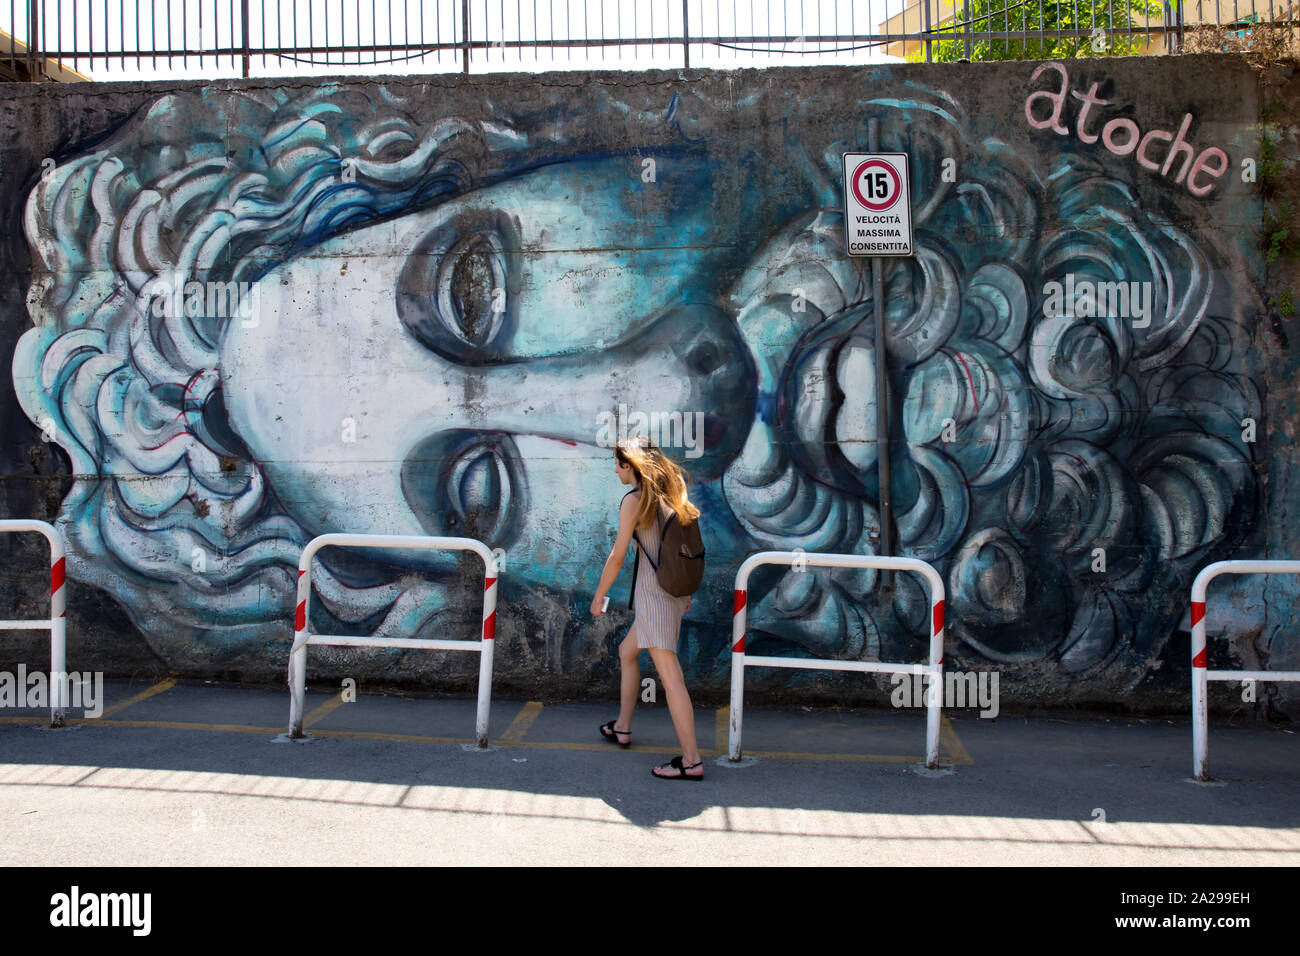 ROME Street art by Carlos Atoche at the psychology faculty of La Sapienza university - Stock Photo